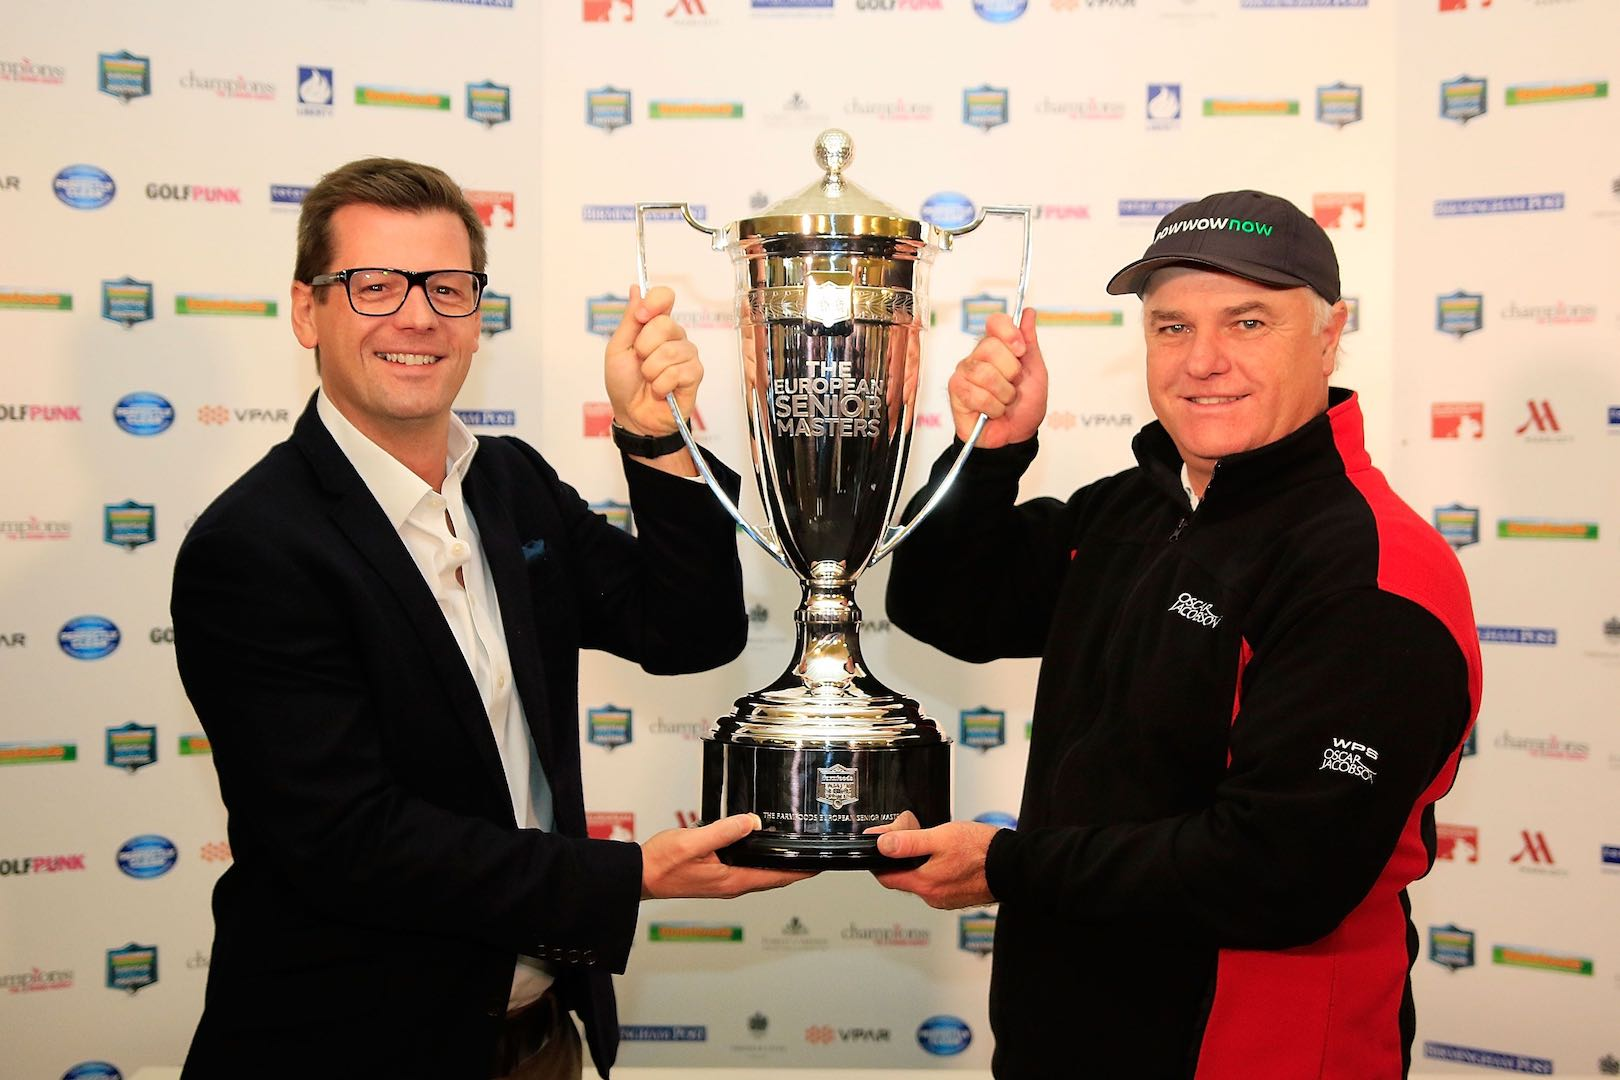 Stephen Dodd wins European Senior Masters